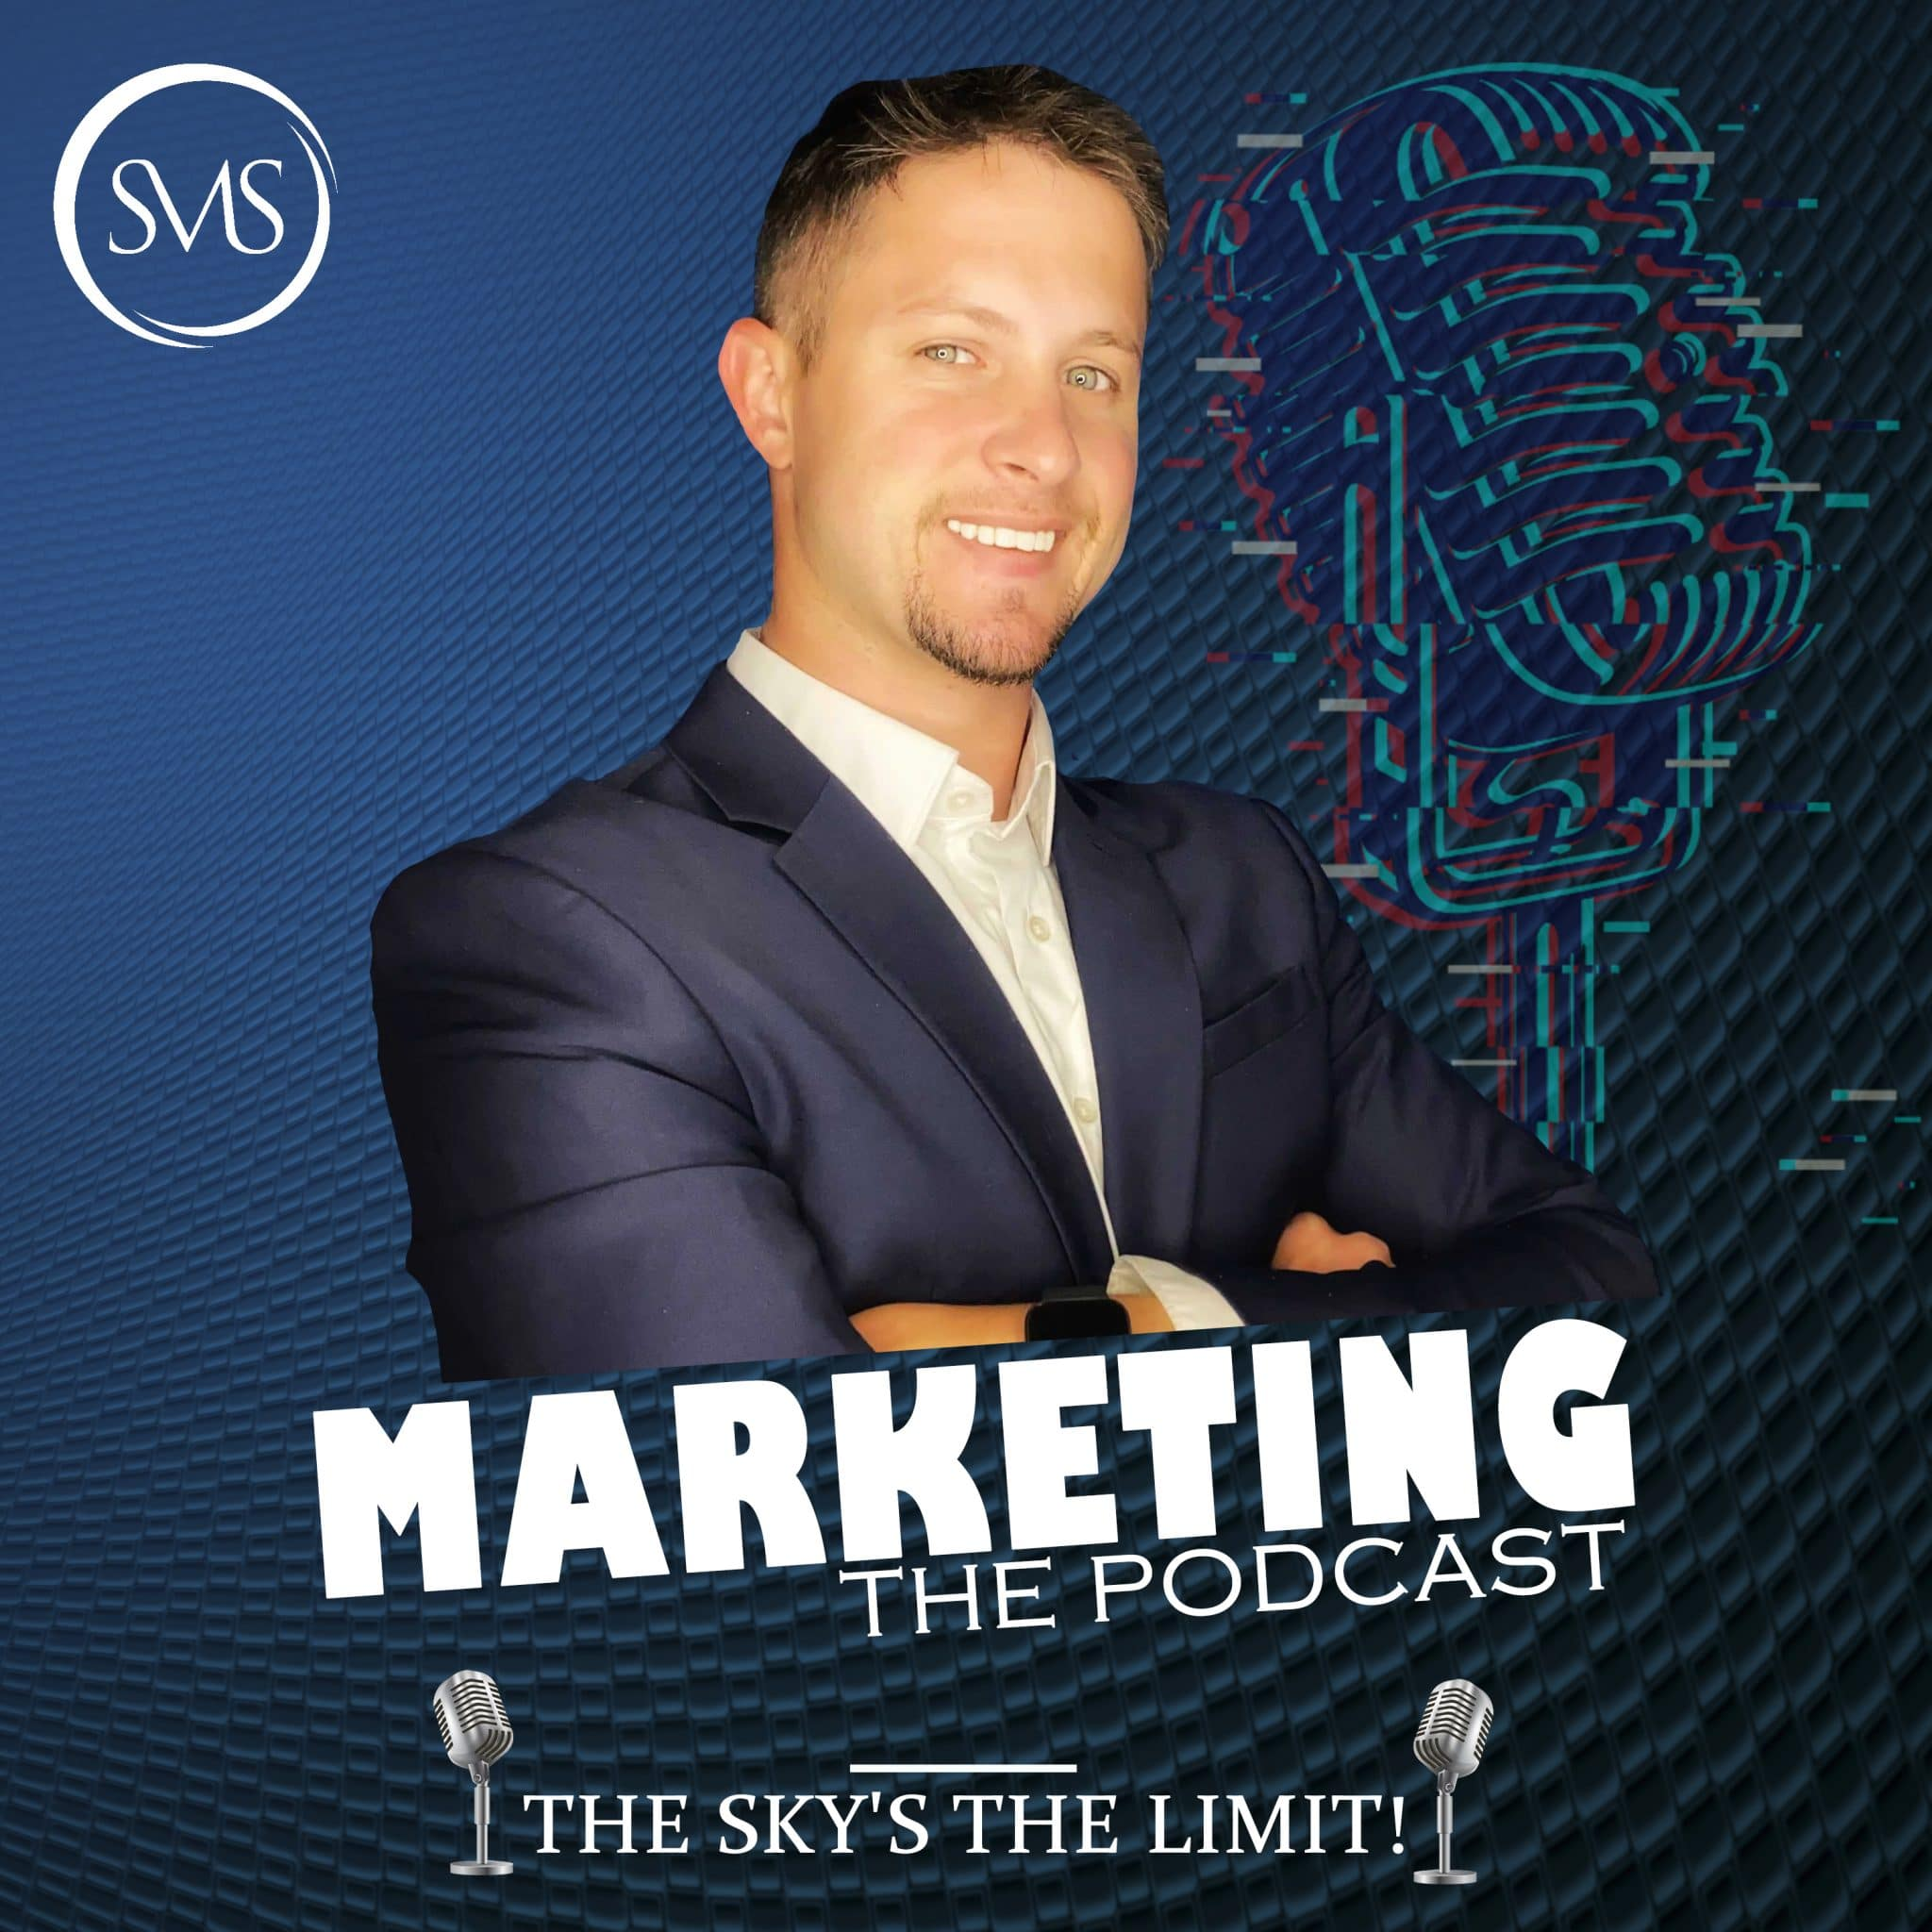 Marketing Podcast Cover